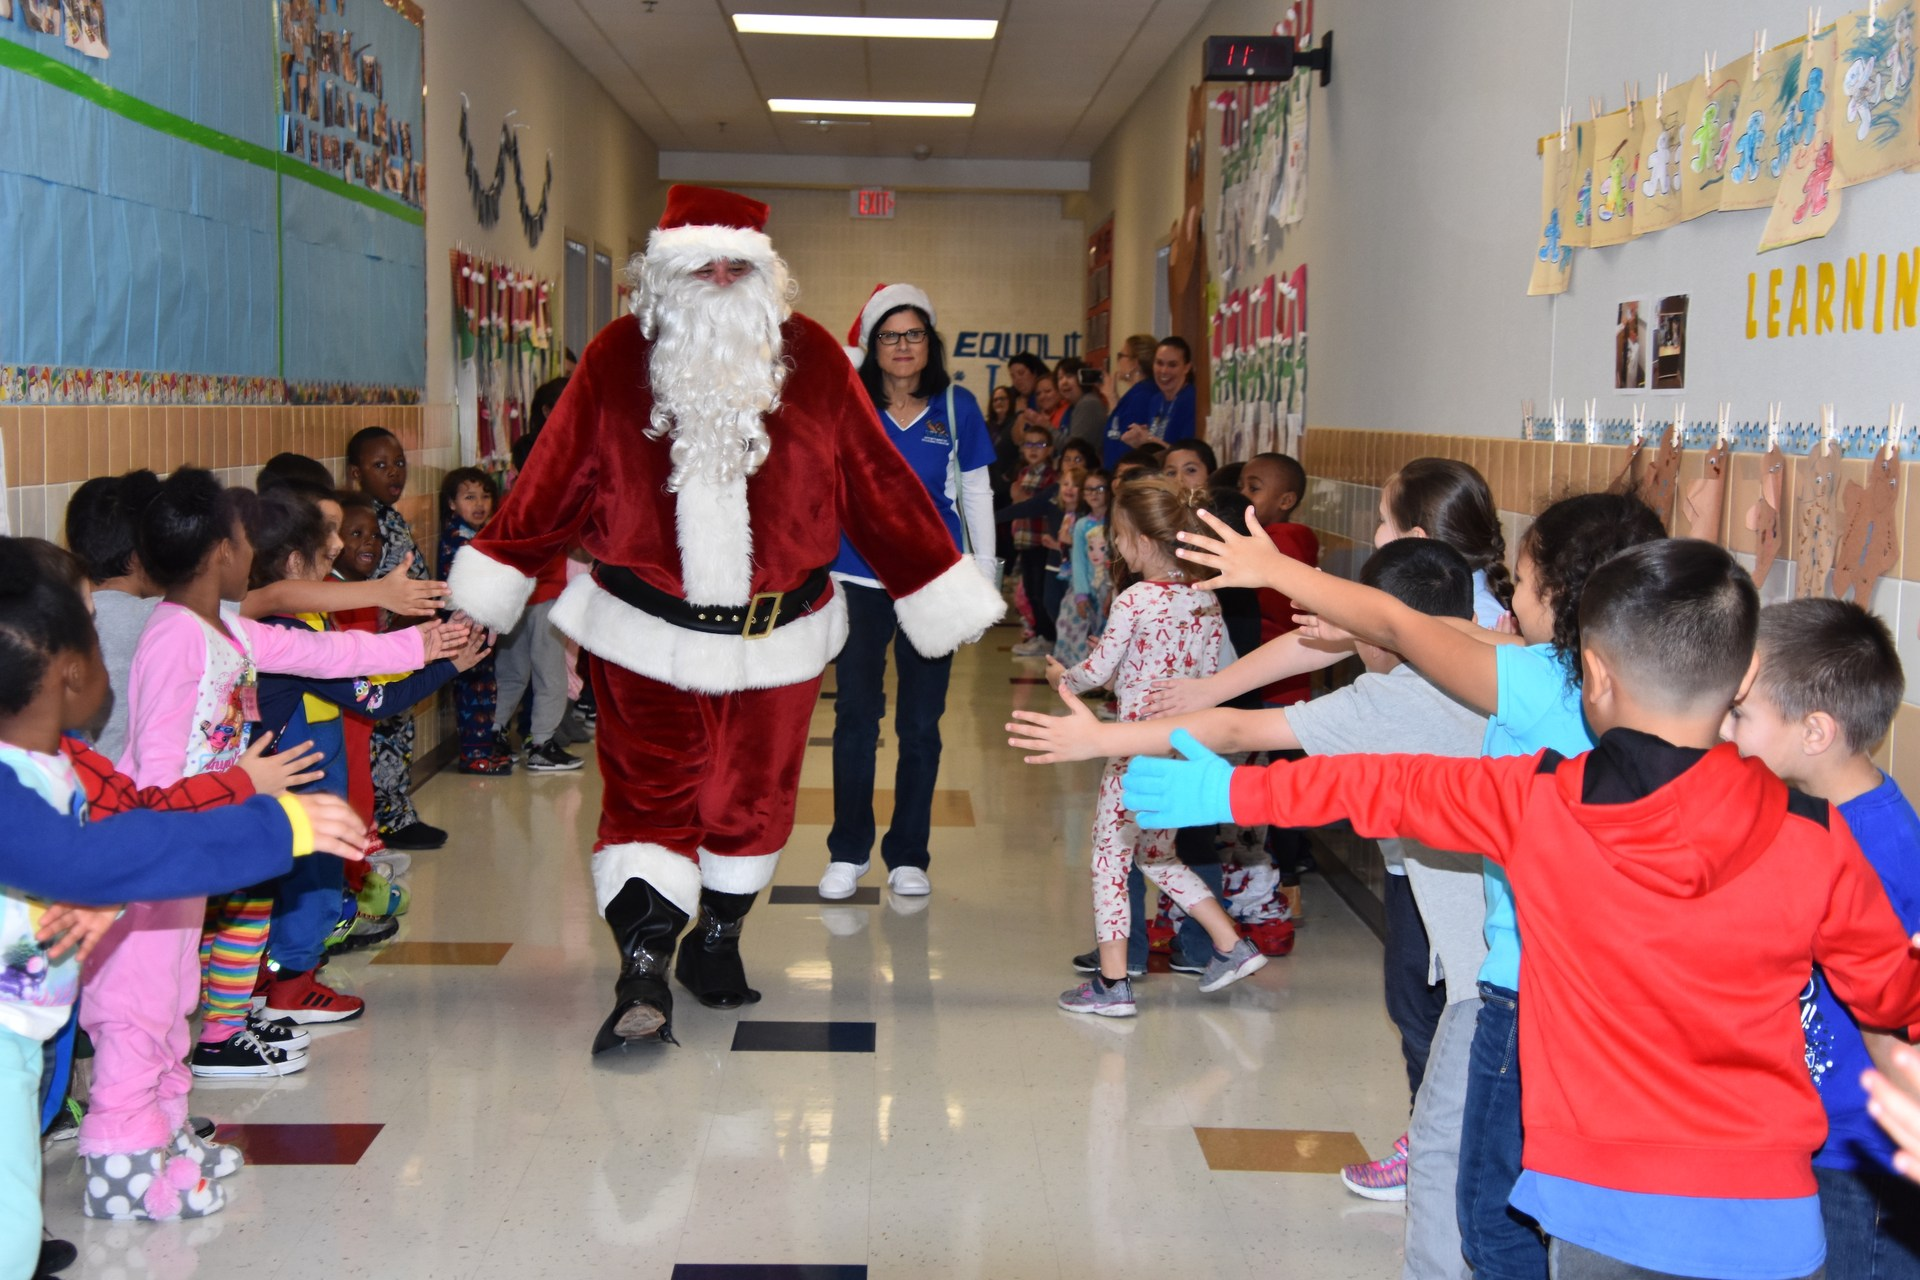 Santa and his elves surprised White Settlement ISD educators when they awarded nearly $50,000 in innovative teaching grants on Friday, Dec. 15.